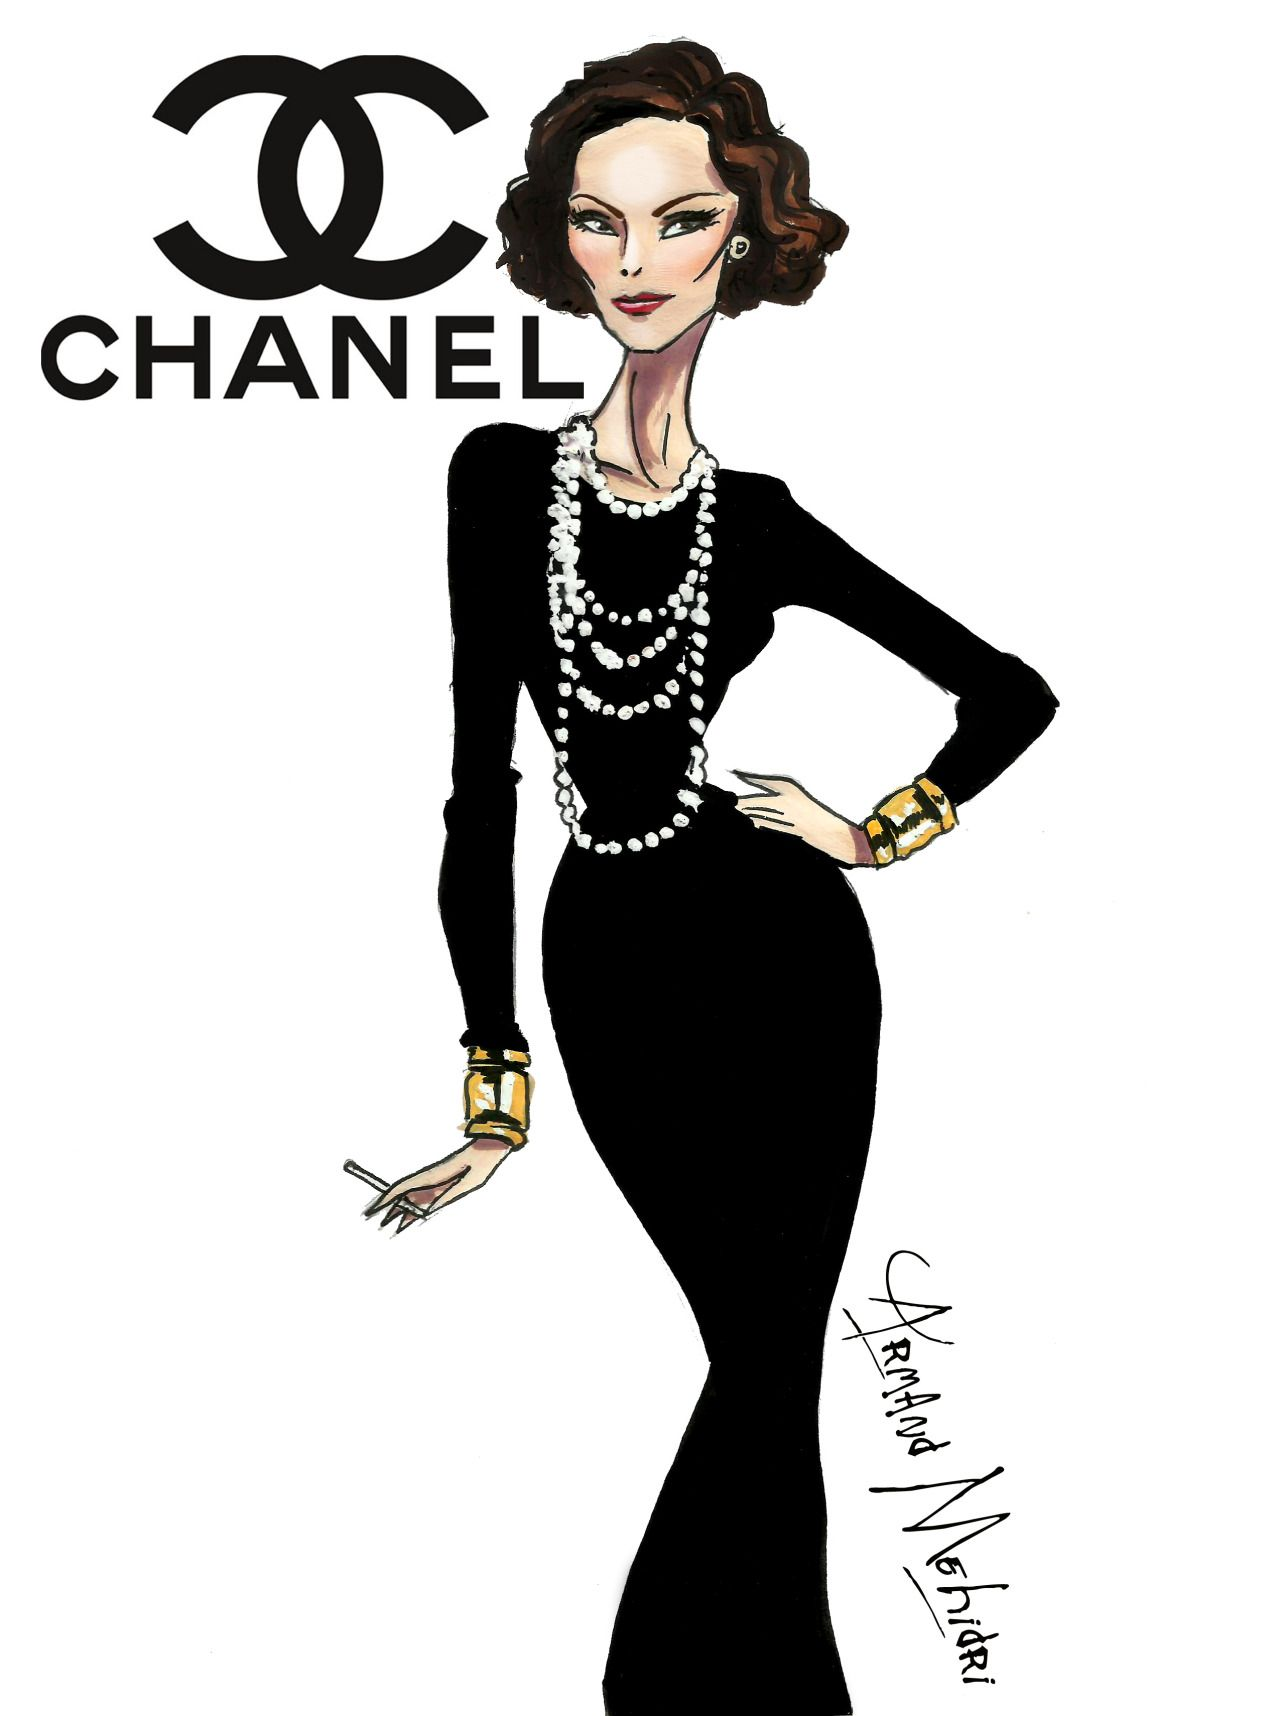 Coco Chanel Fashion Illustrations Images Galleries With A Bite